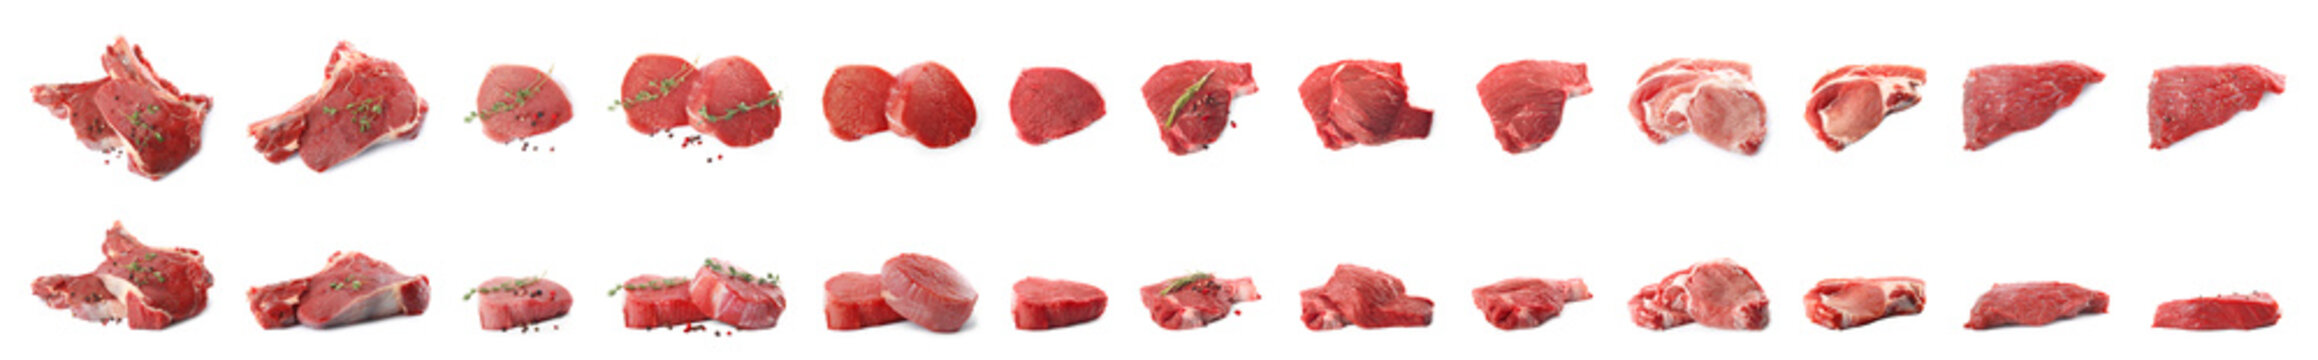 Set of fresh raw beef steaks isolated on white. Banner design